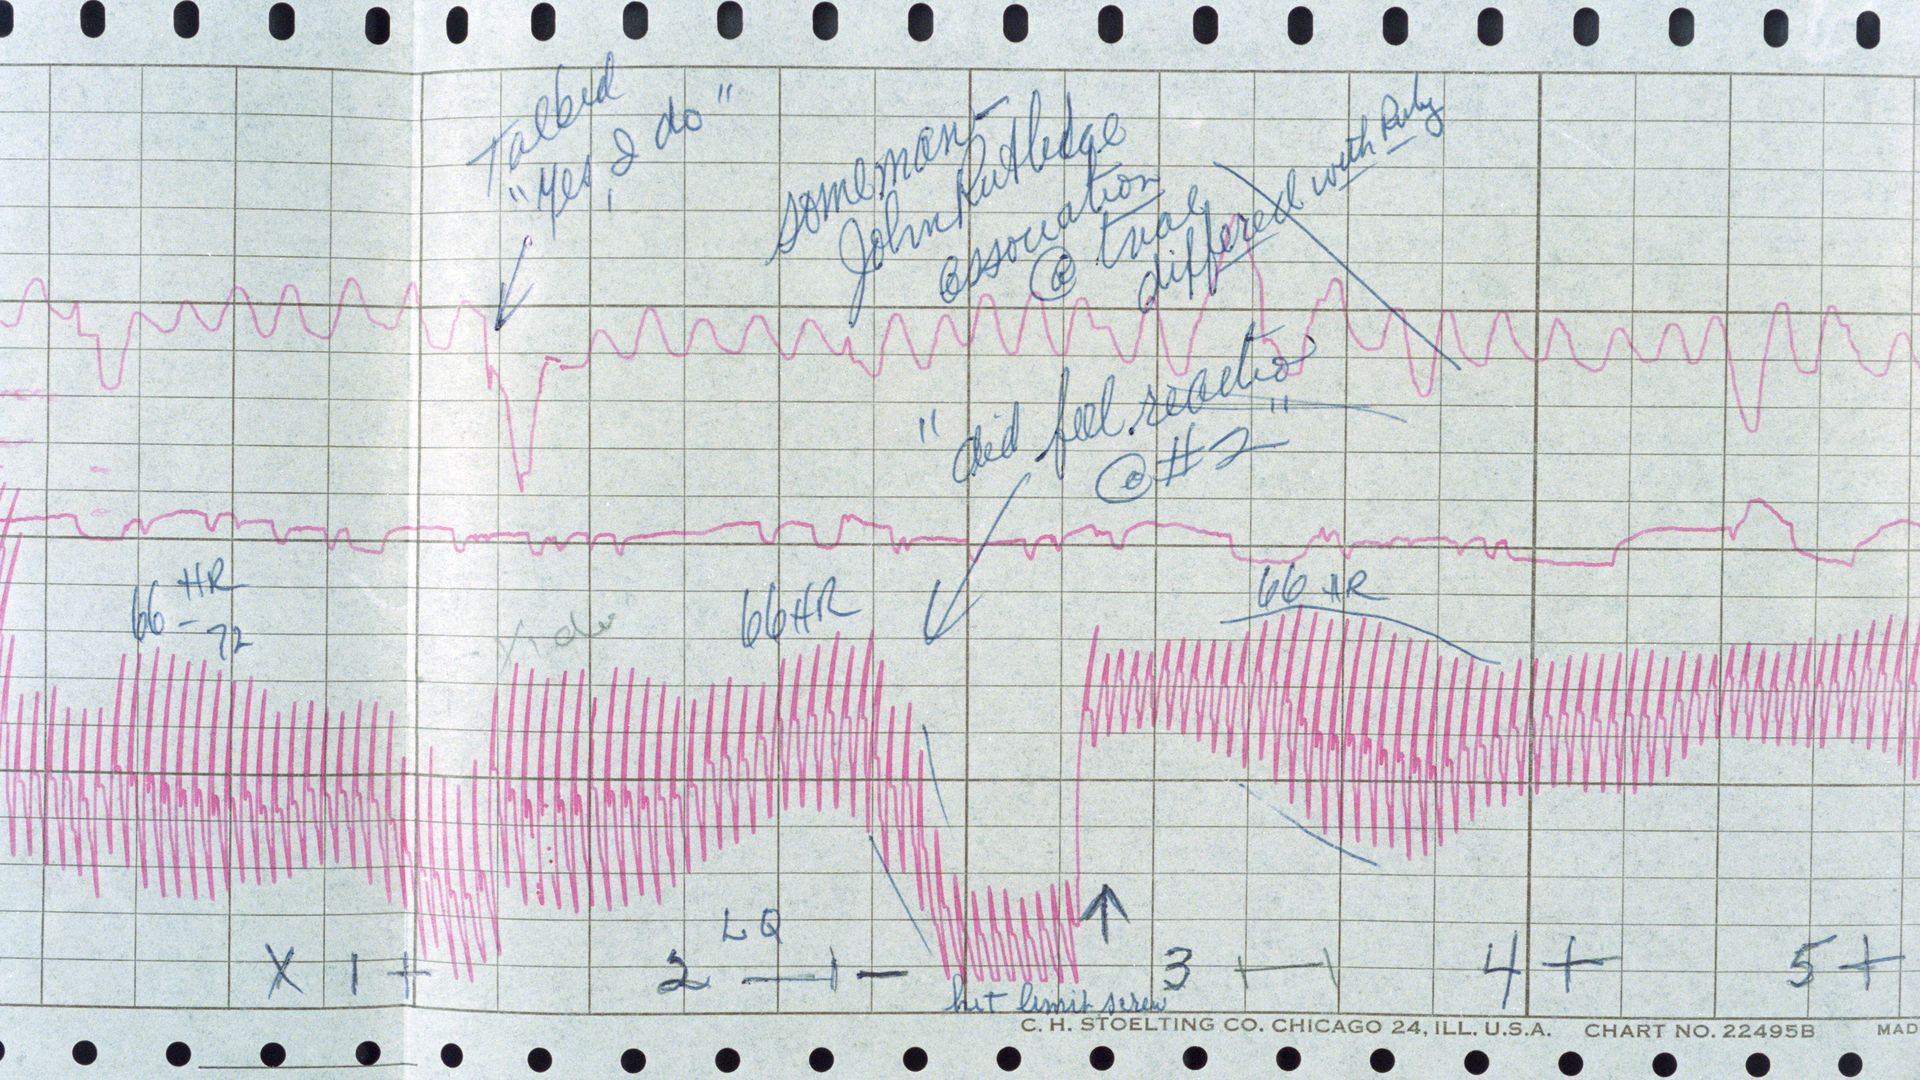 Online polygraph under development would detect lies in text